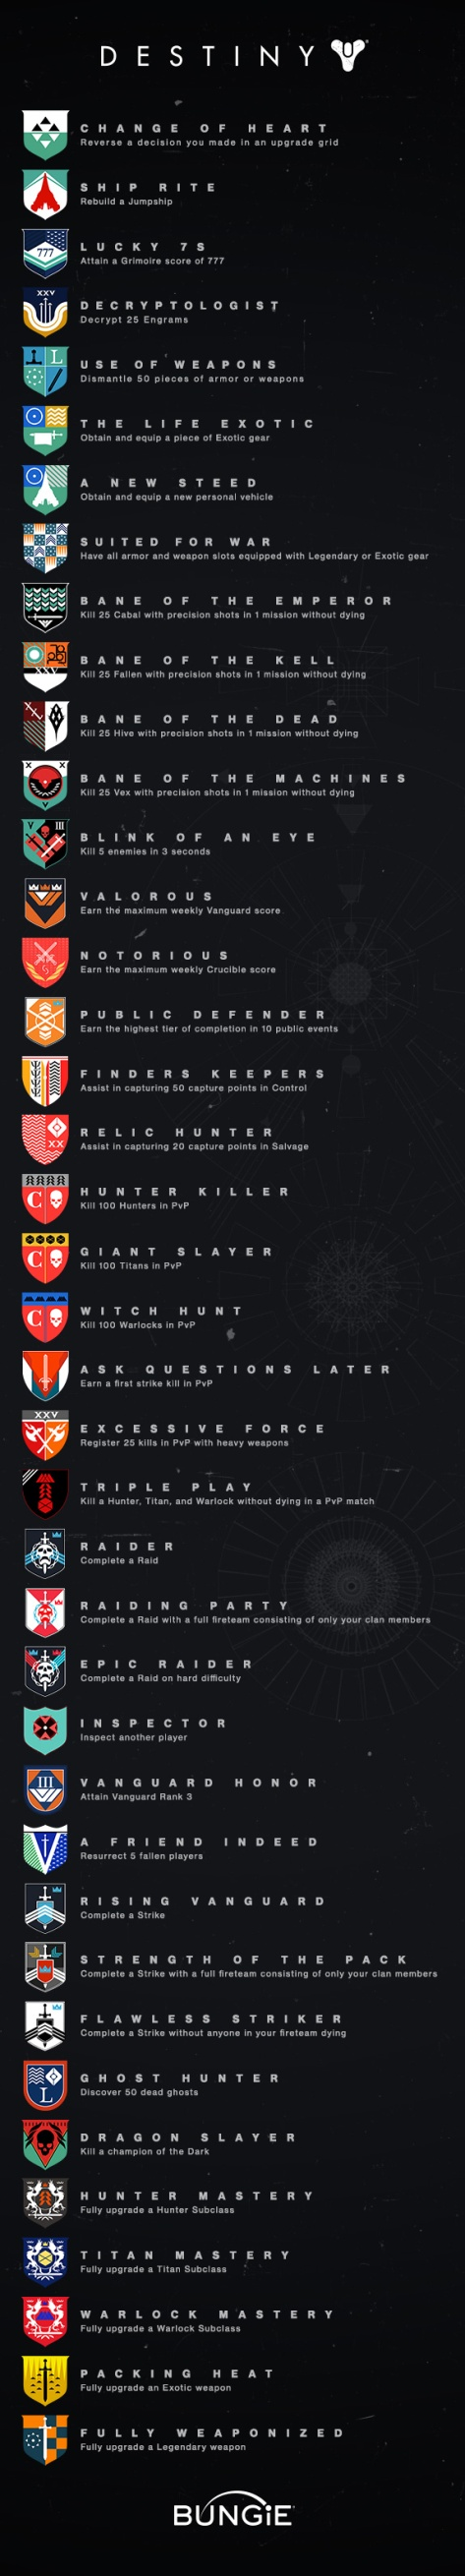 Destiny, Destiny Achievements